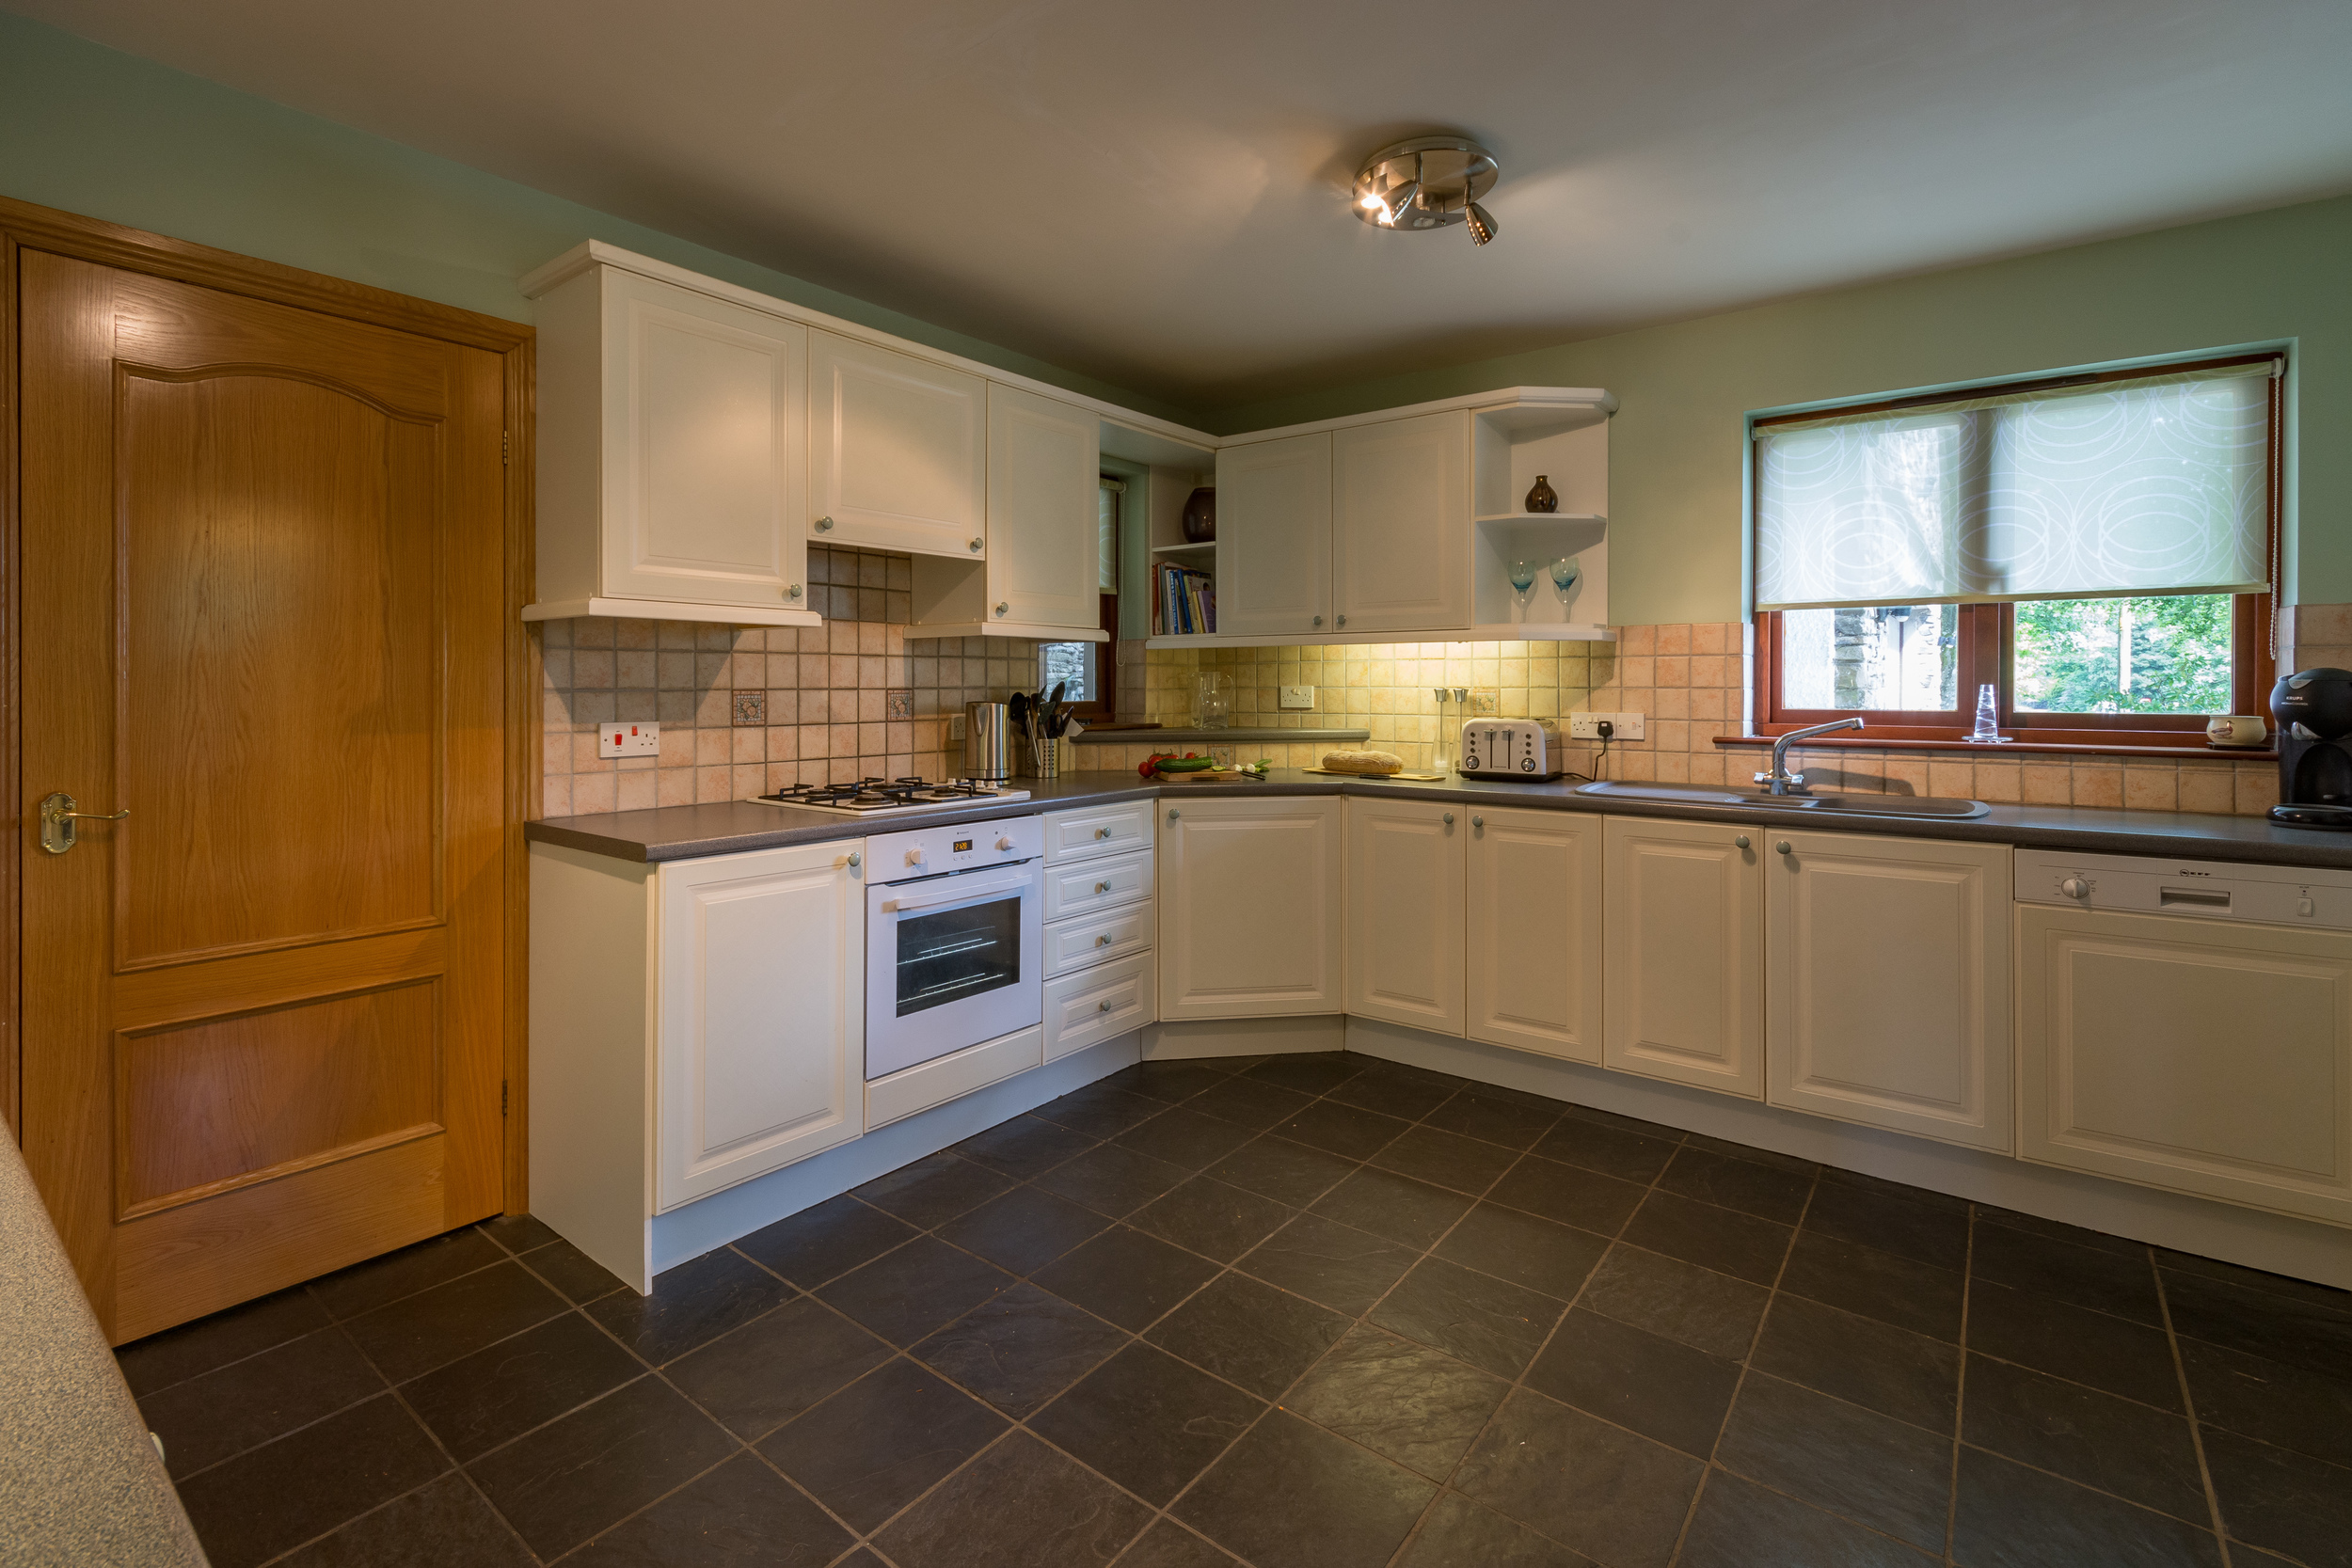 Kitchen 3 - Beech Nook Thornthwaite, Keswick Holidays Self Catering.jpg